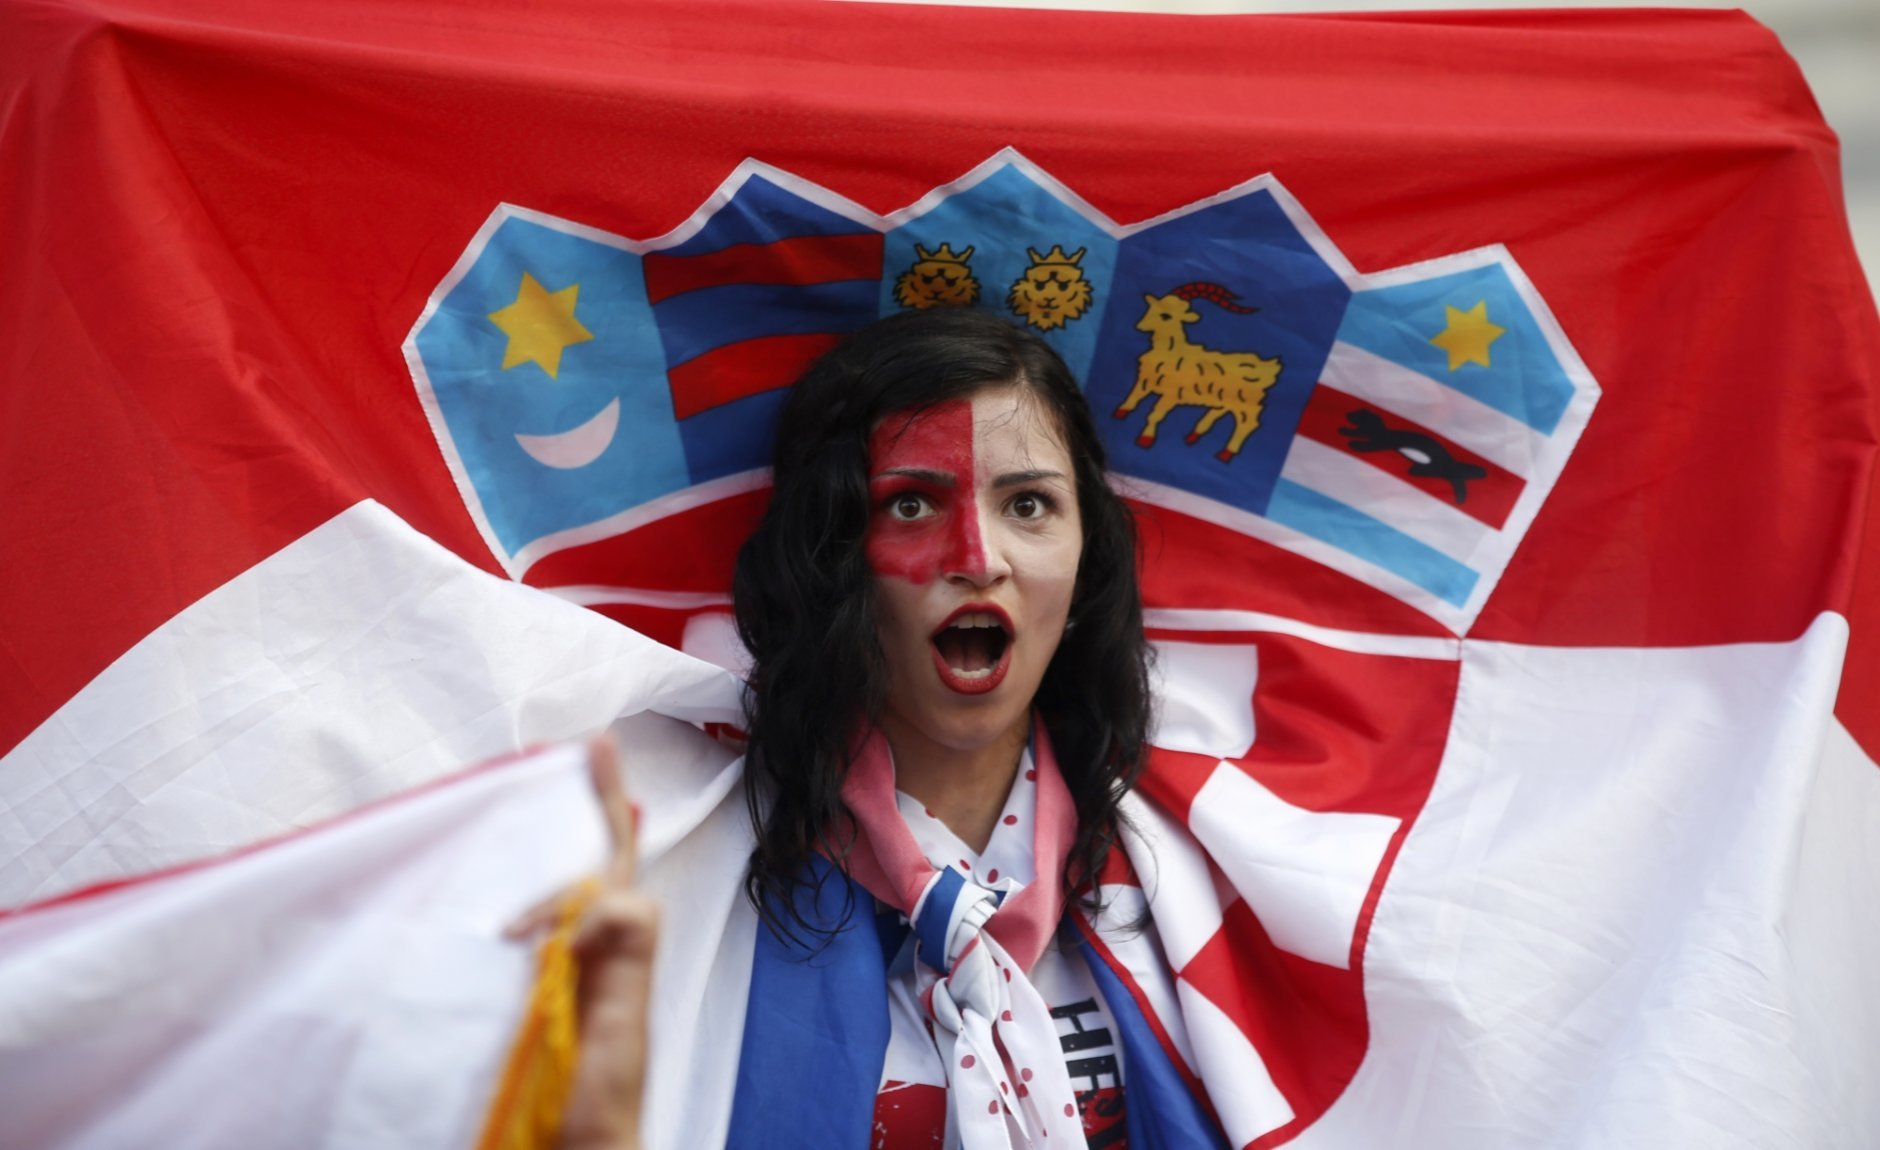 A Croatian soccer fan cheers as they watch a television broadcast of the Russia 2018 World Cup match between France and Croatia in downtown Zagreb, Croatia, Sunday, July 15, 2018. (AP Photo/Darko Vojinovic)